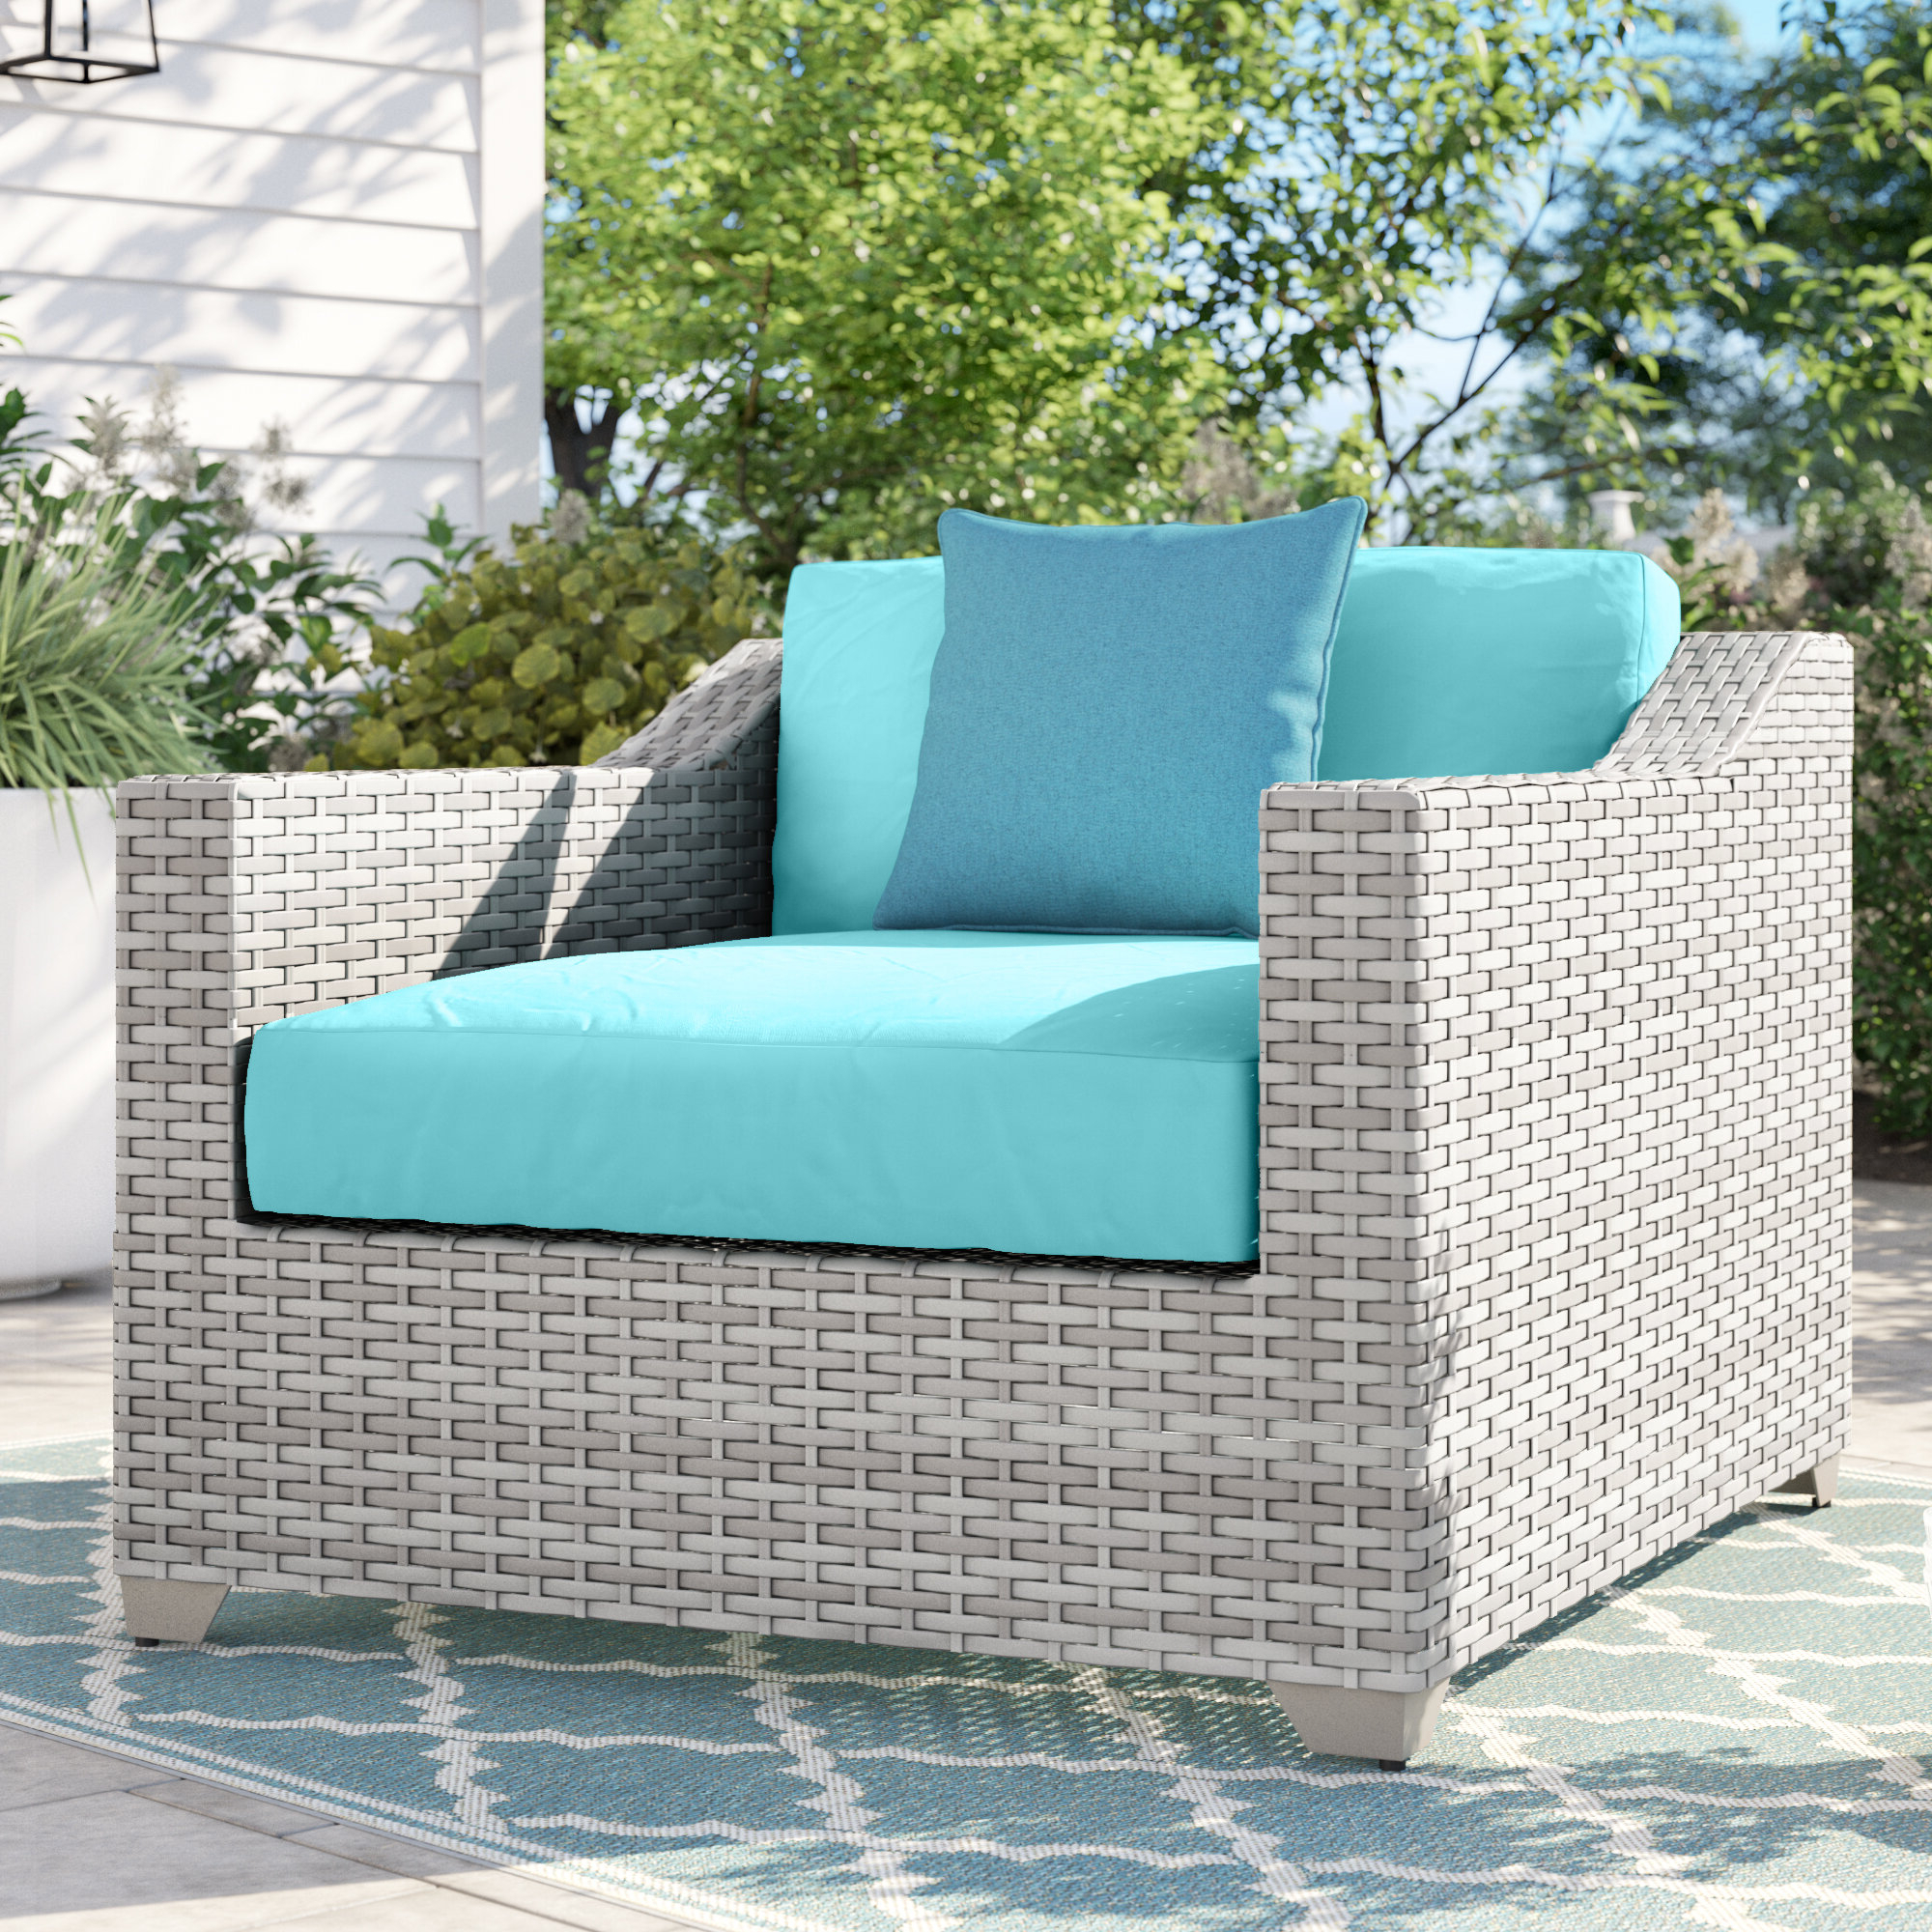 Well Known Patio Sofas With Cushions Within Sol 72 Outdoor Falmouth Patio Chair With Cushions & Reviews (View 17 of 20)